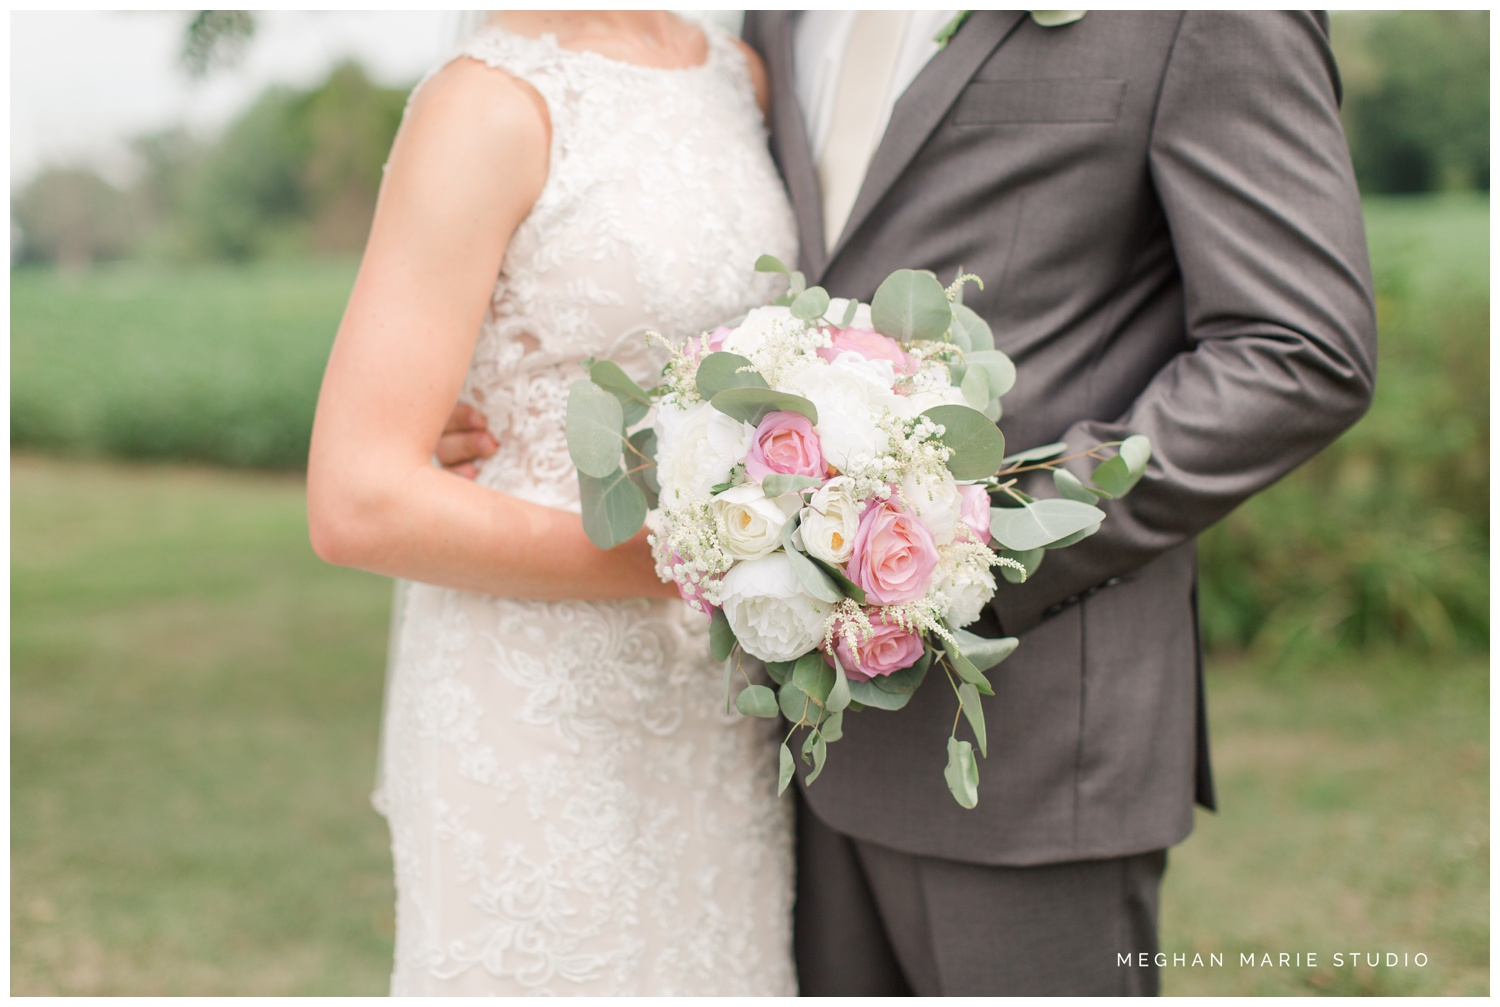 meghan marie studio wedding photographer ohio troy dayton columbus small town rustic rural farm cows vintage mauves dusty rose pinks whites ivorys grays f1 sound paper lanterns pearls_0628.jpg